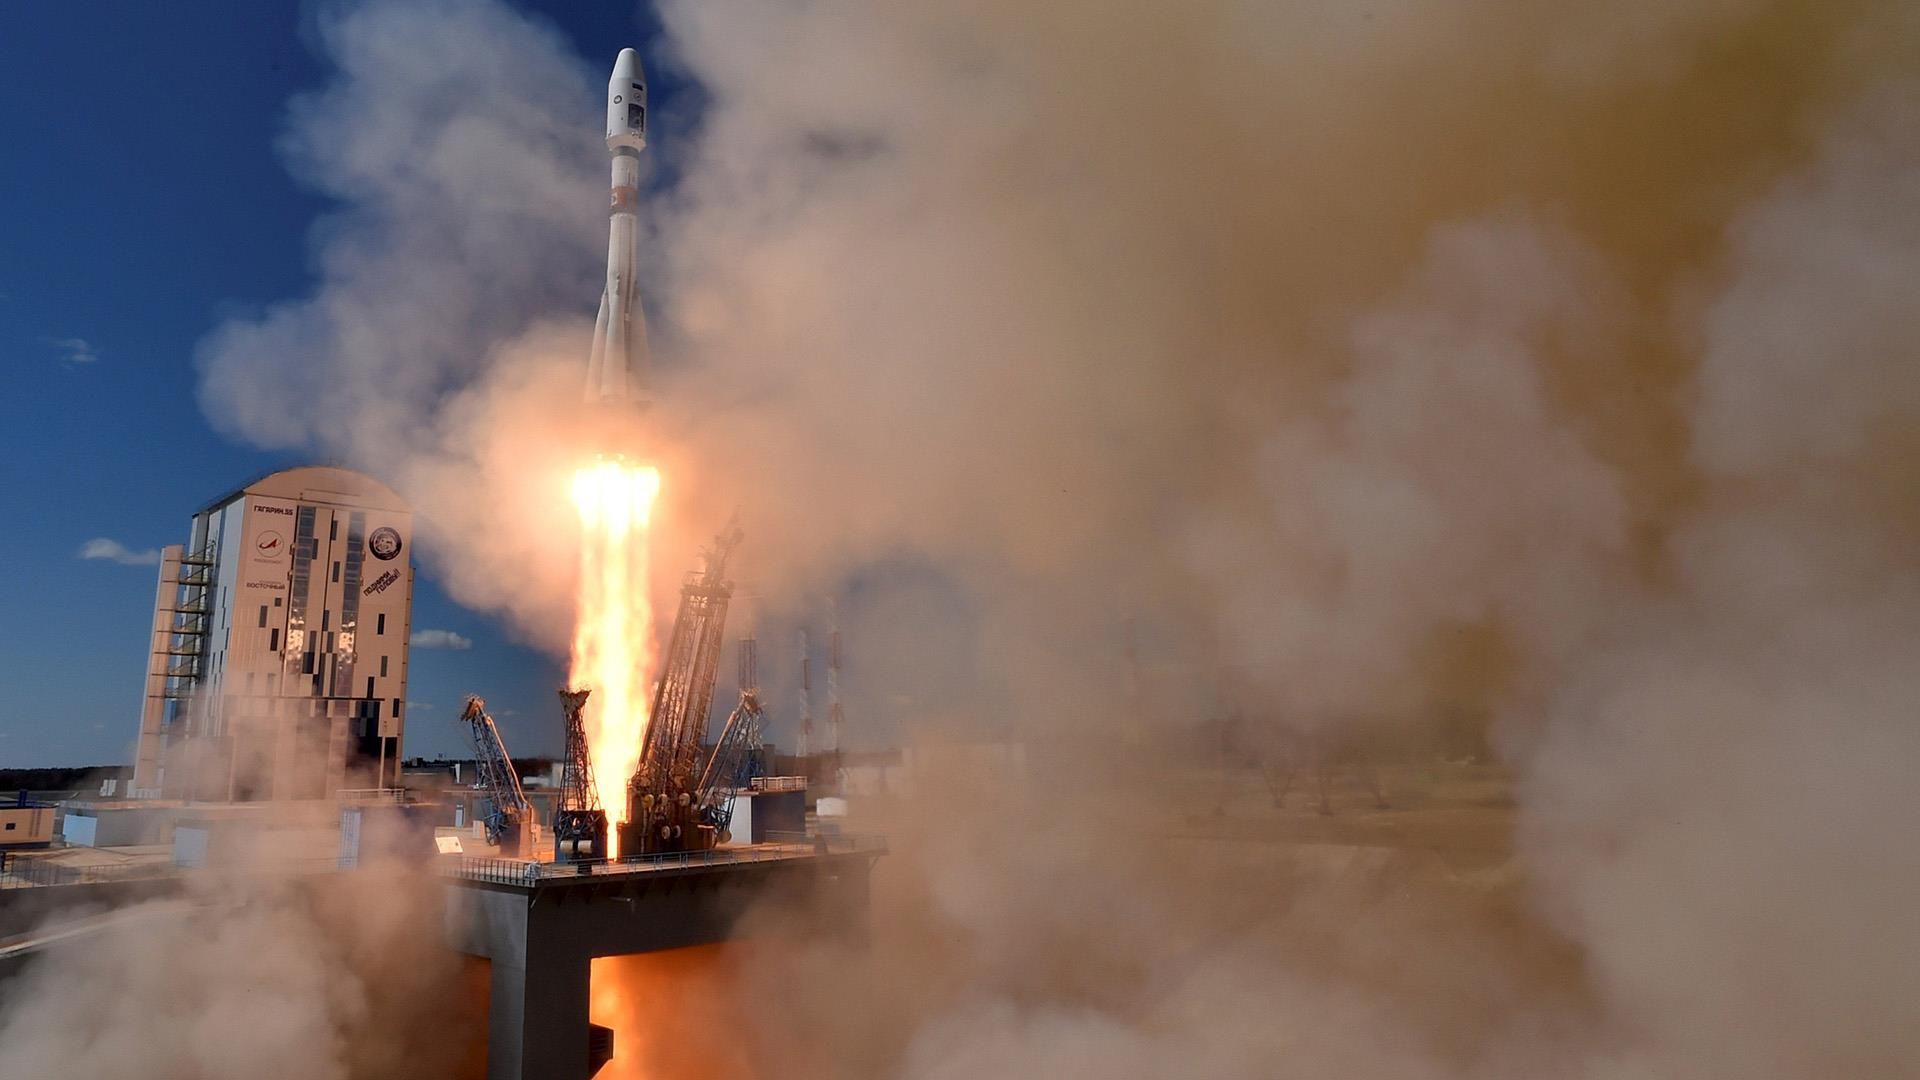 Watch Inaugural Launch From Russia's New Spaceport: President Putin witnessed an unmanned rocket make the first launch from a new cosmodrome near the border with China.